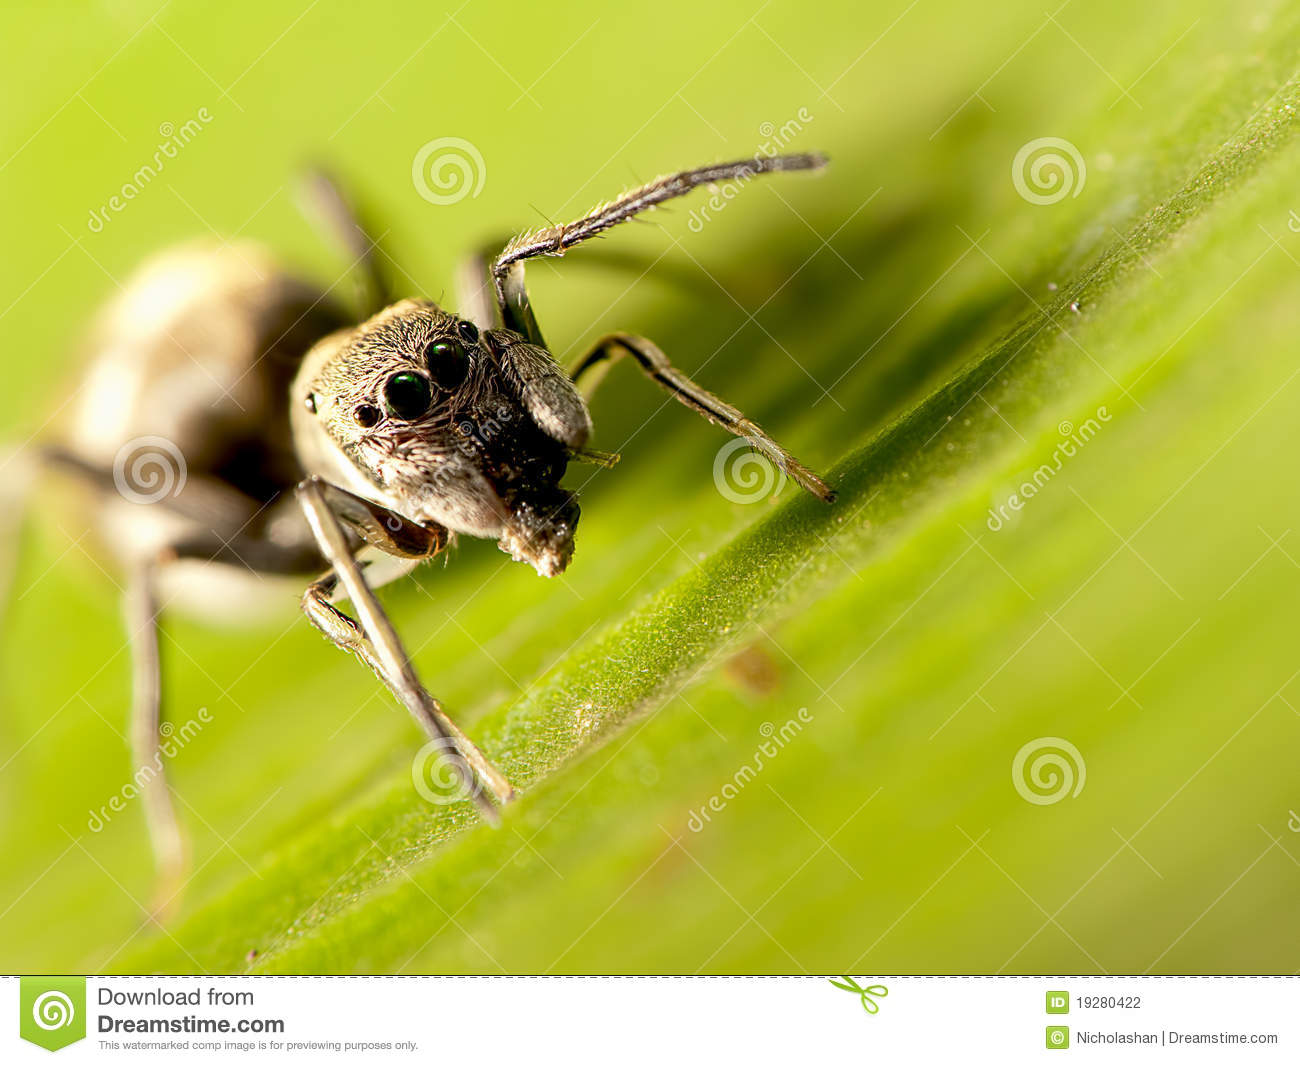 Ant-mimic jumping spider